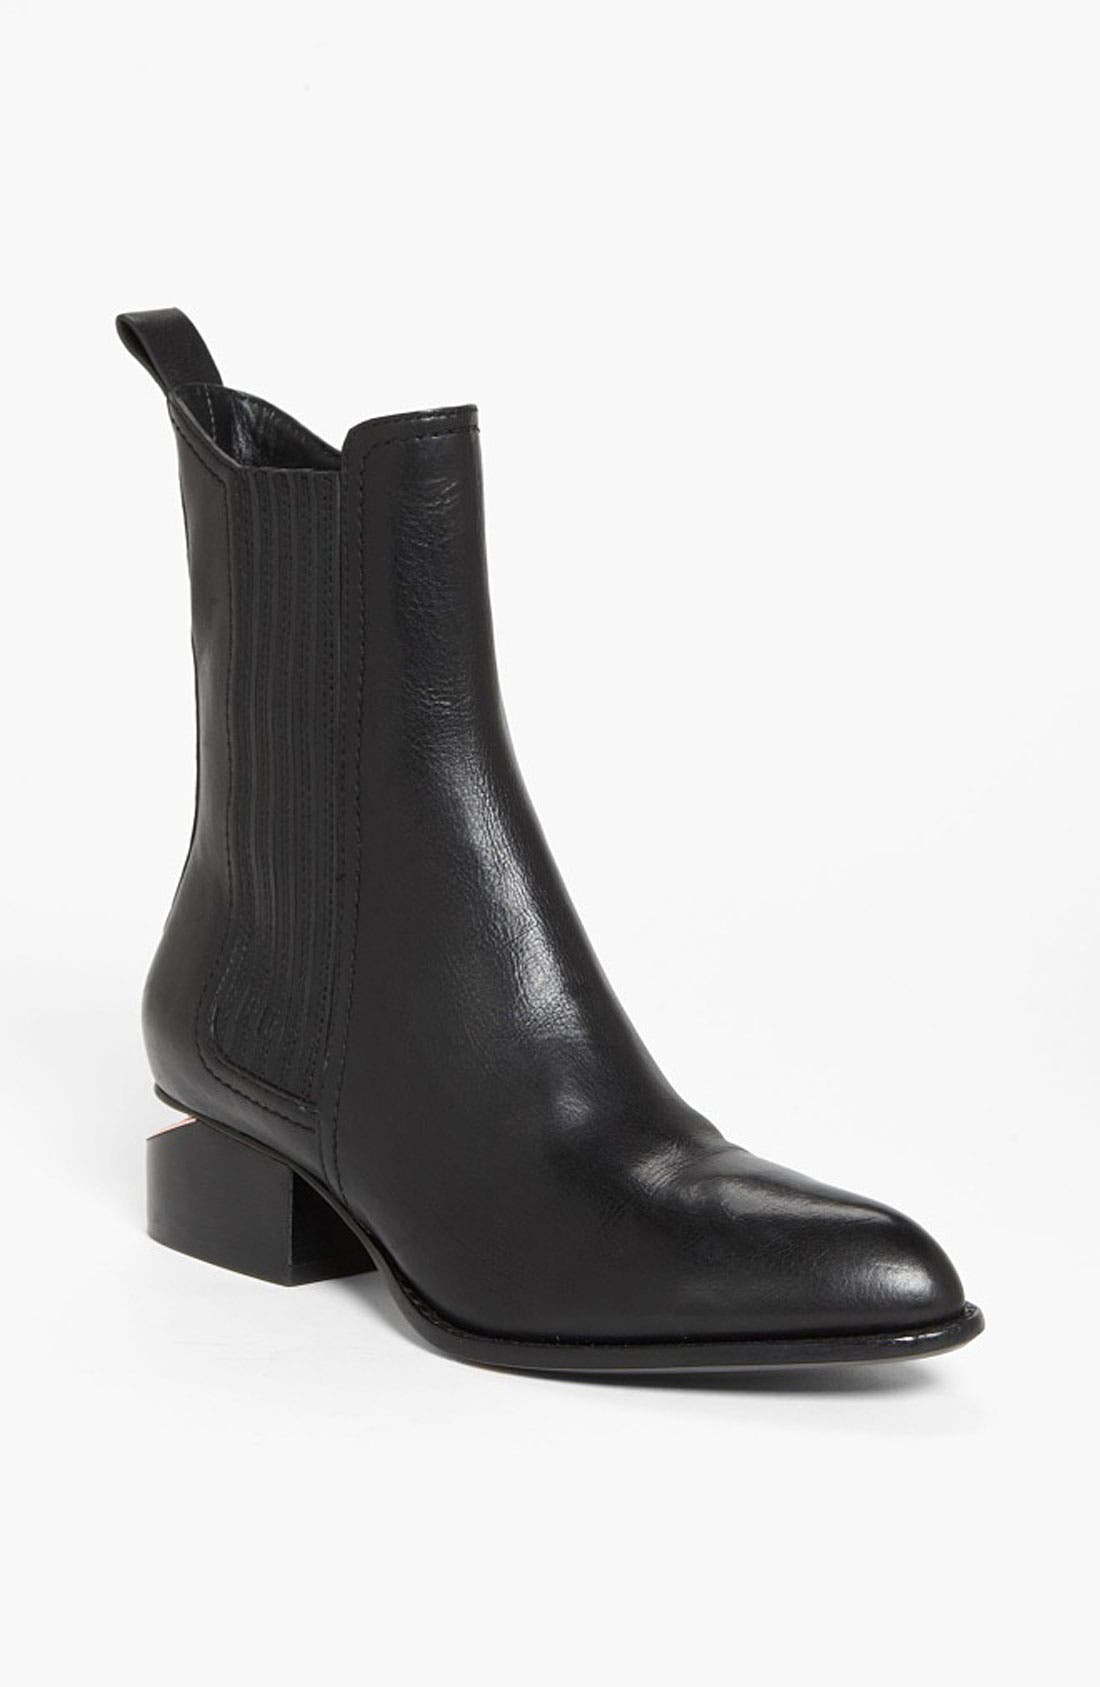 Alternate Image 1 Selected - Alexander Wang 'Anouck' Chelsea Boot